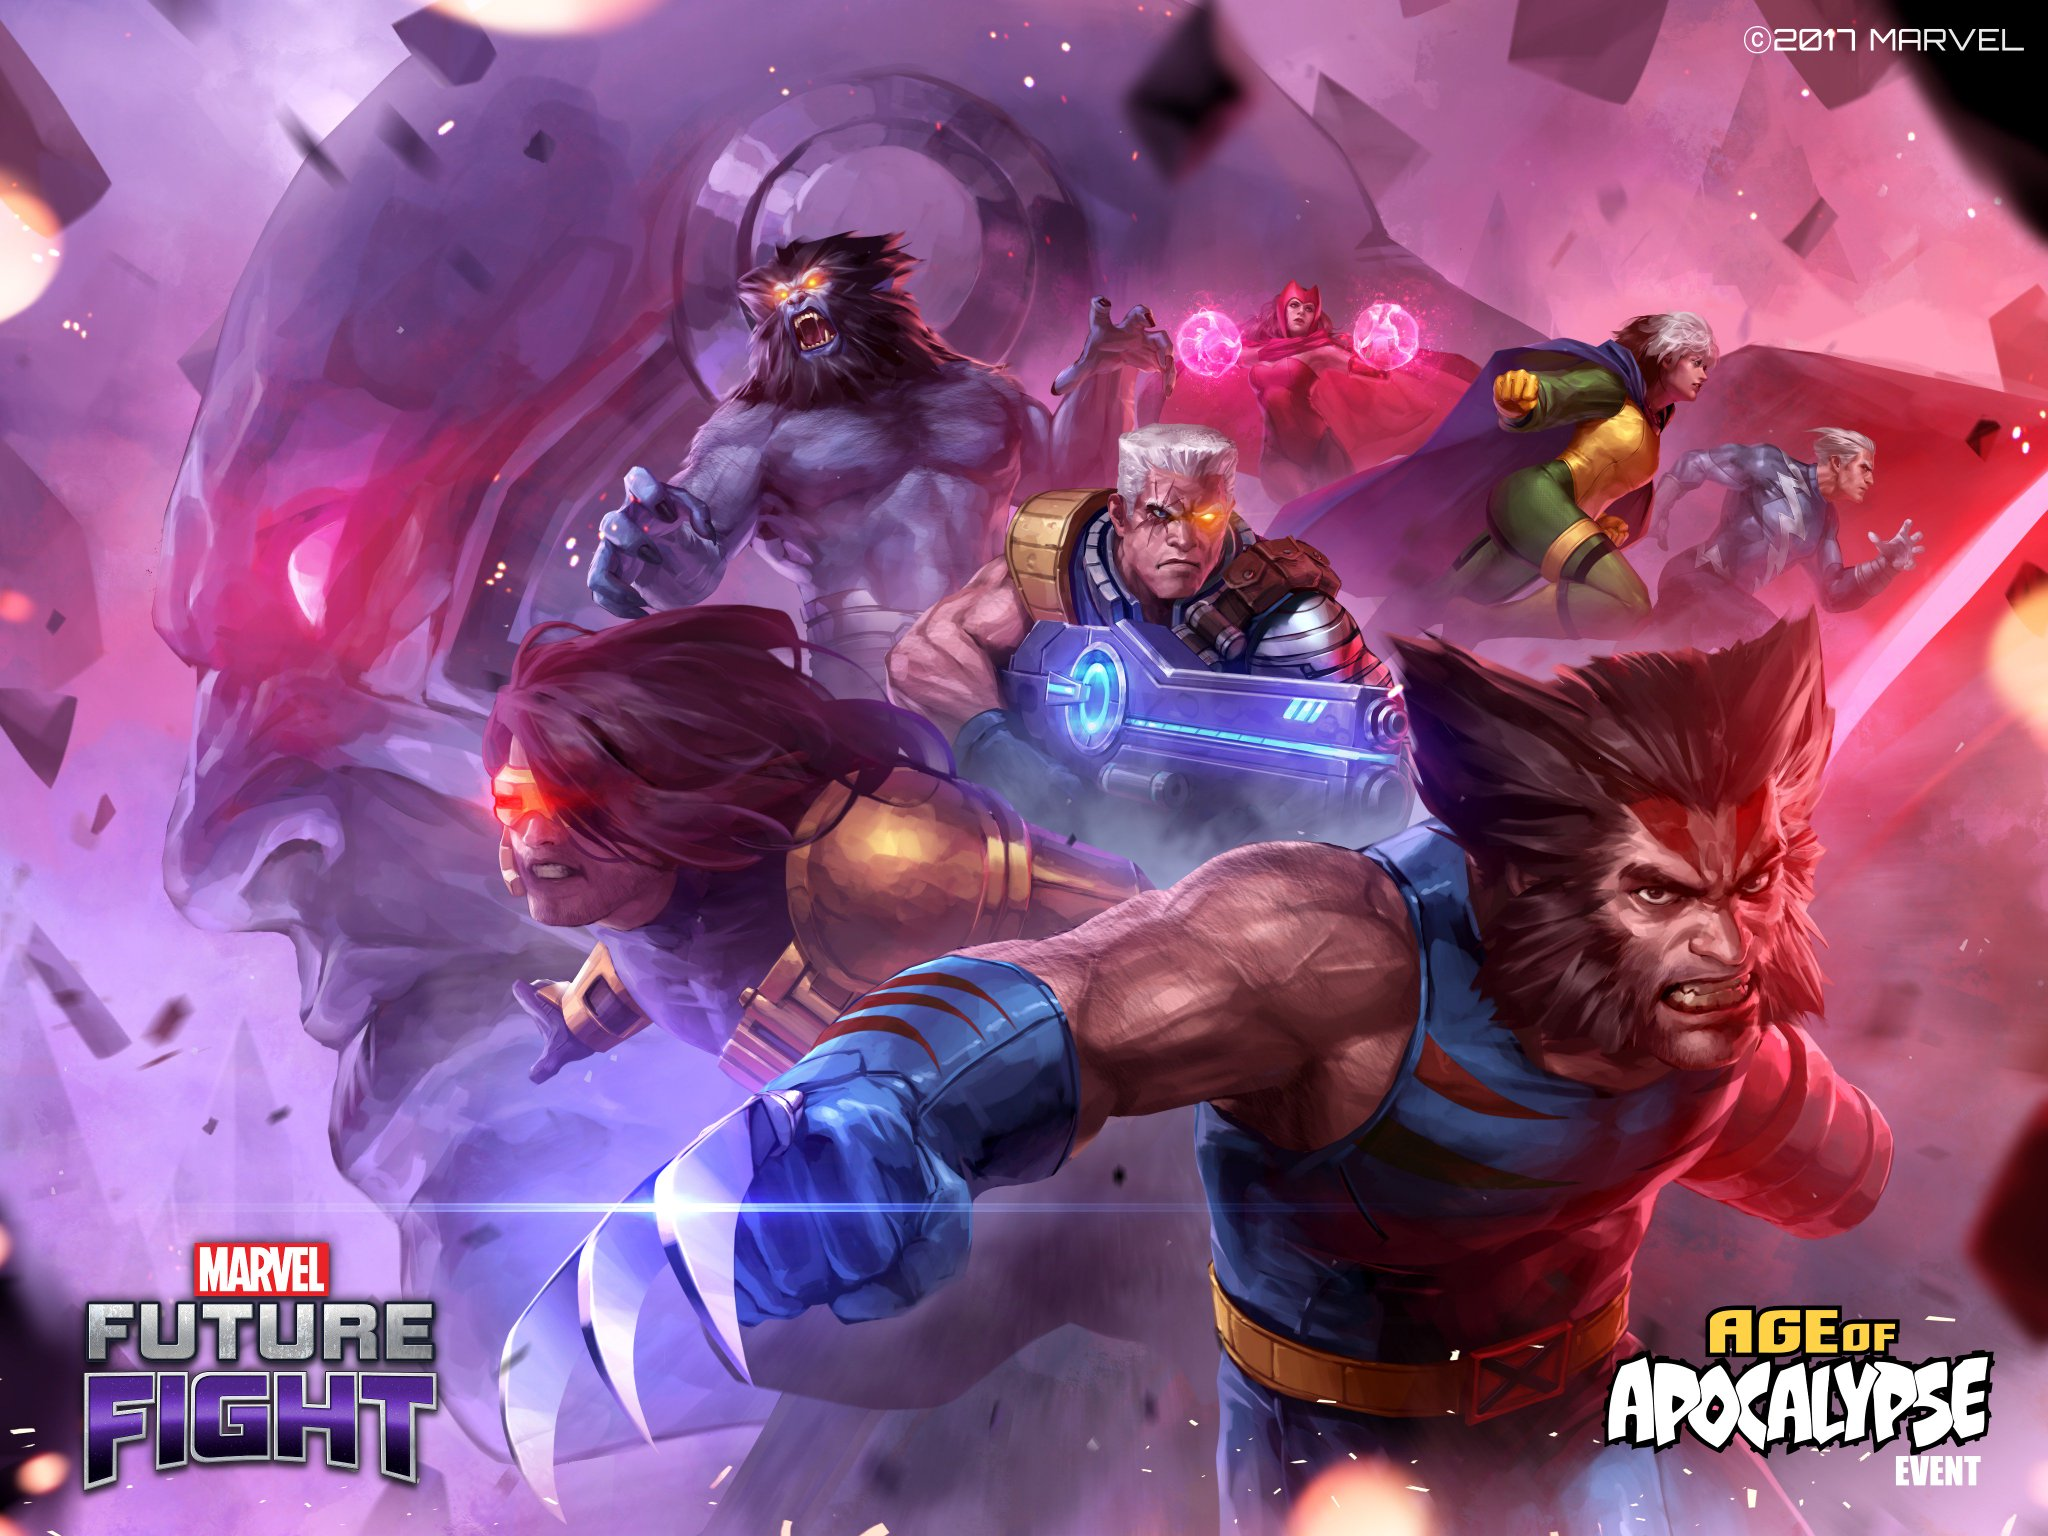 [iOS/Android] Marvel Future Fight Official Thread - Part 2 [REBORN]